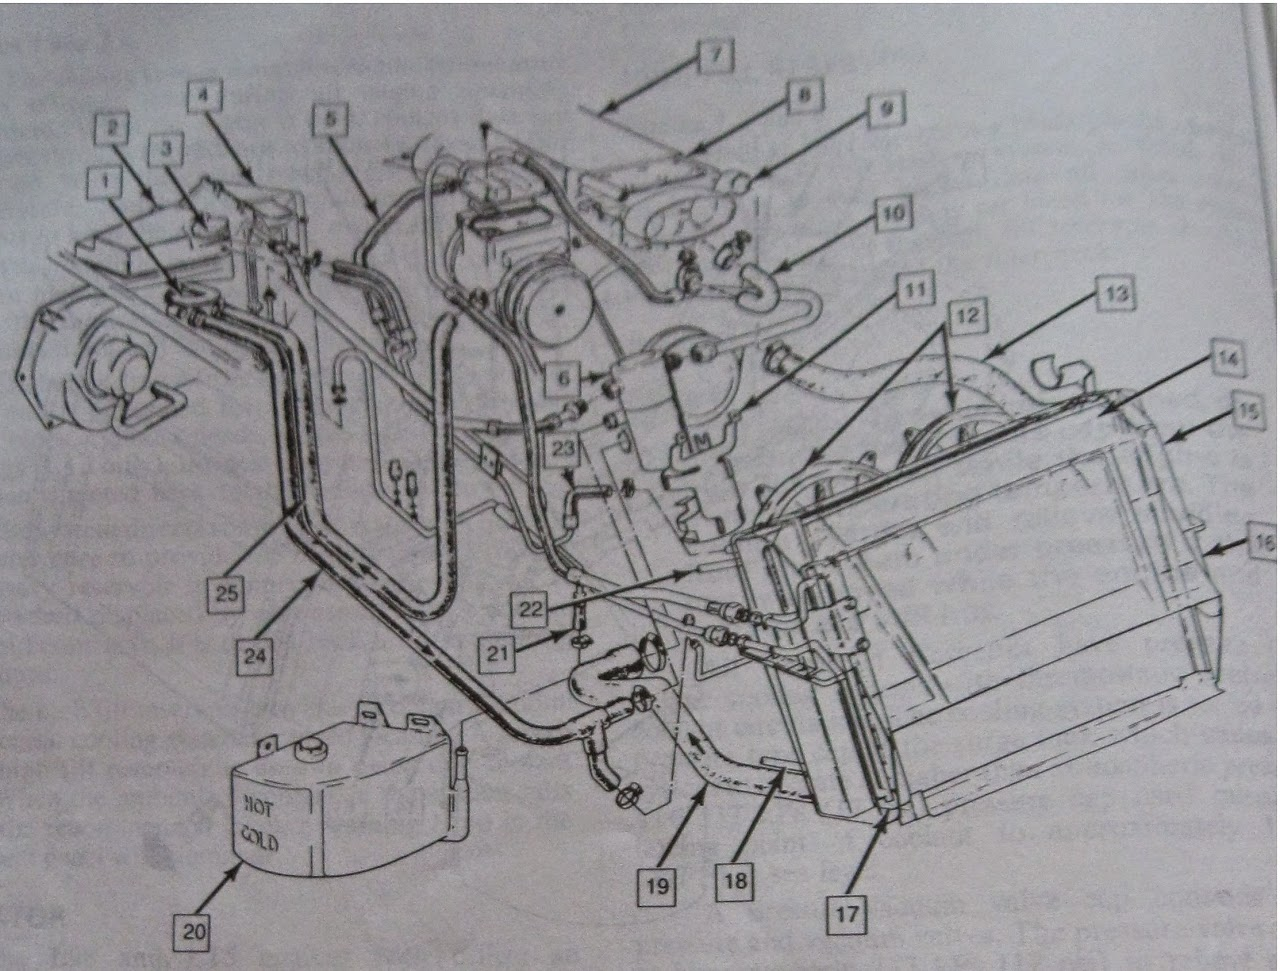 hight resolution of 94 corvette vacuum diagram wiring diagram used 94 corvette vacuum diagram